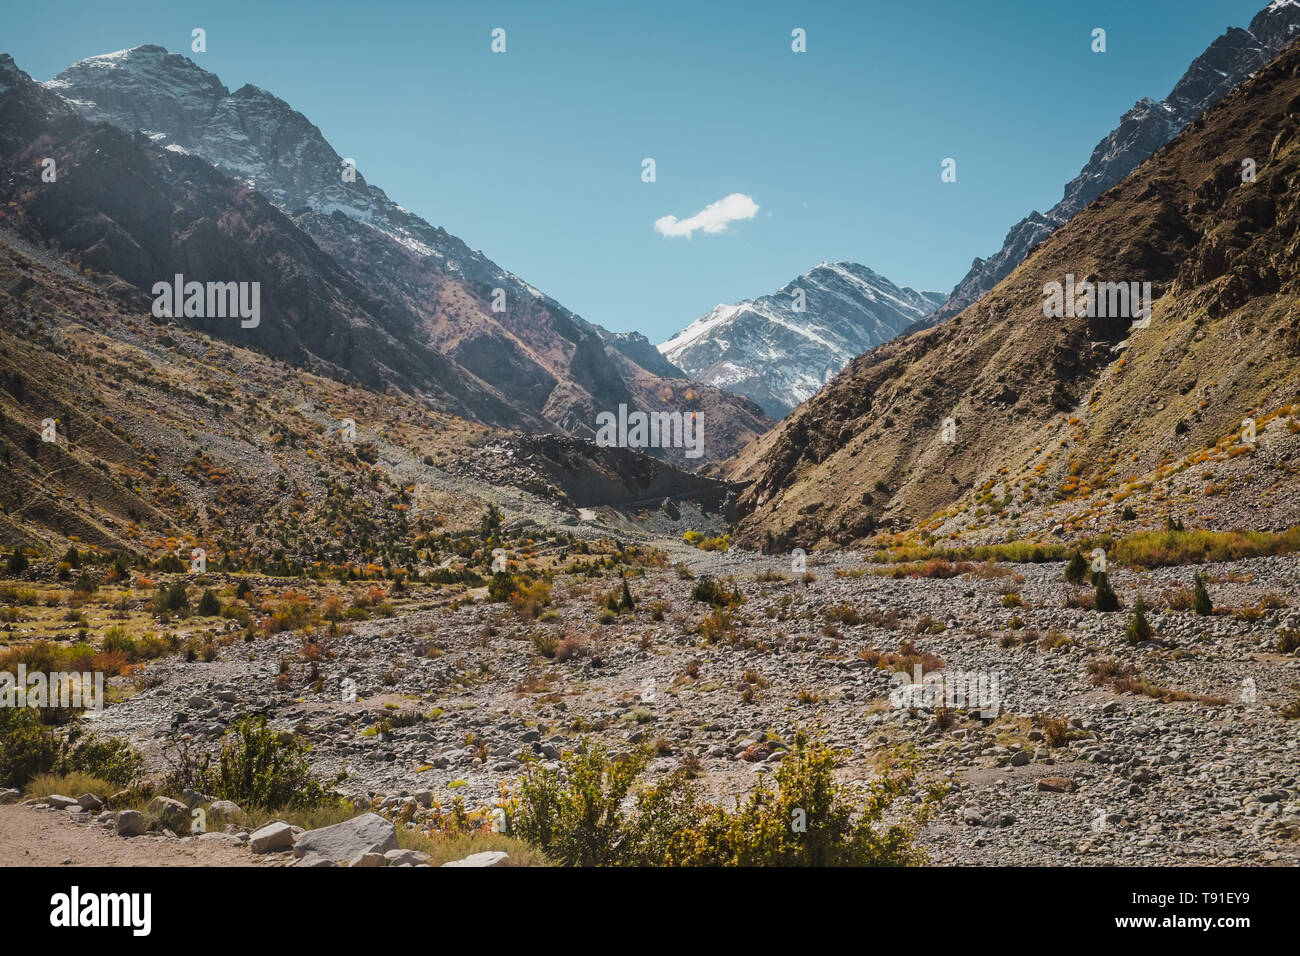 Nature landscape view of wilderness area surrounded by snow capped mountains in Karakoram range, Skardu. Gilgit Baltistan, Pakistan. - Stock Image